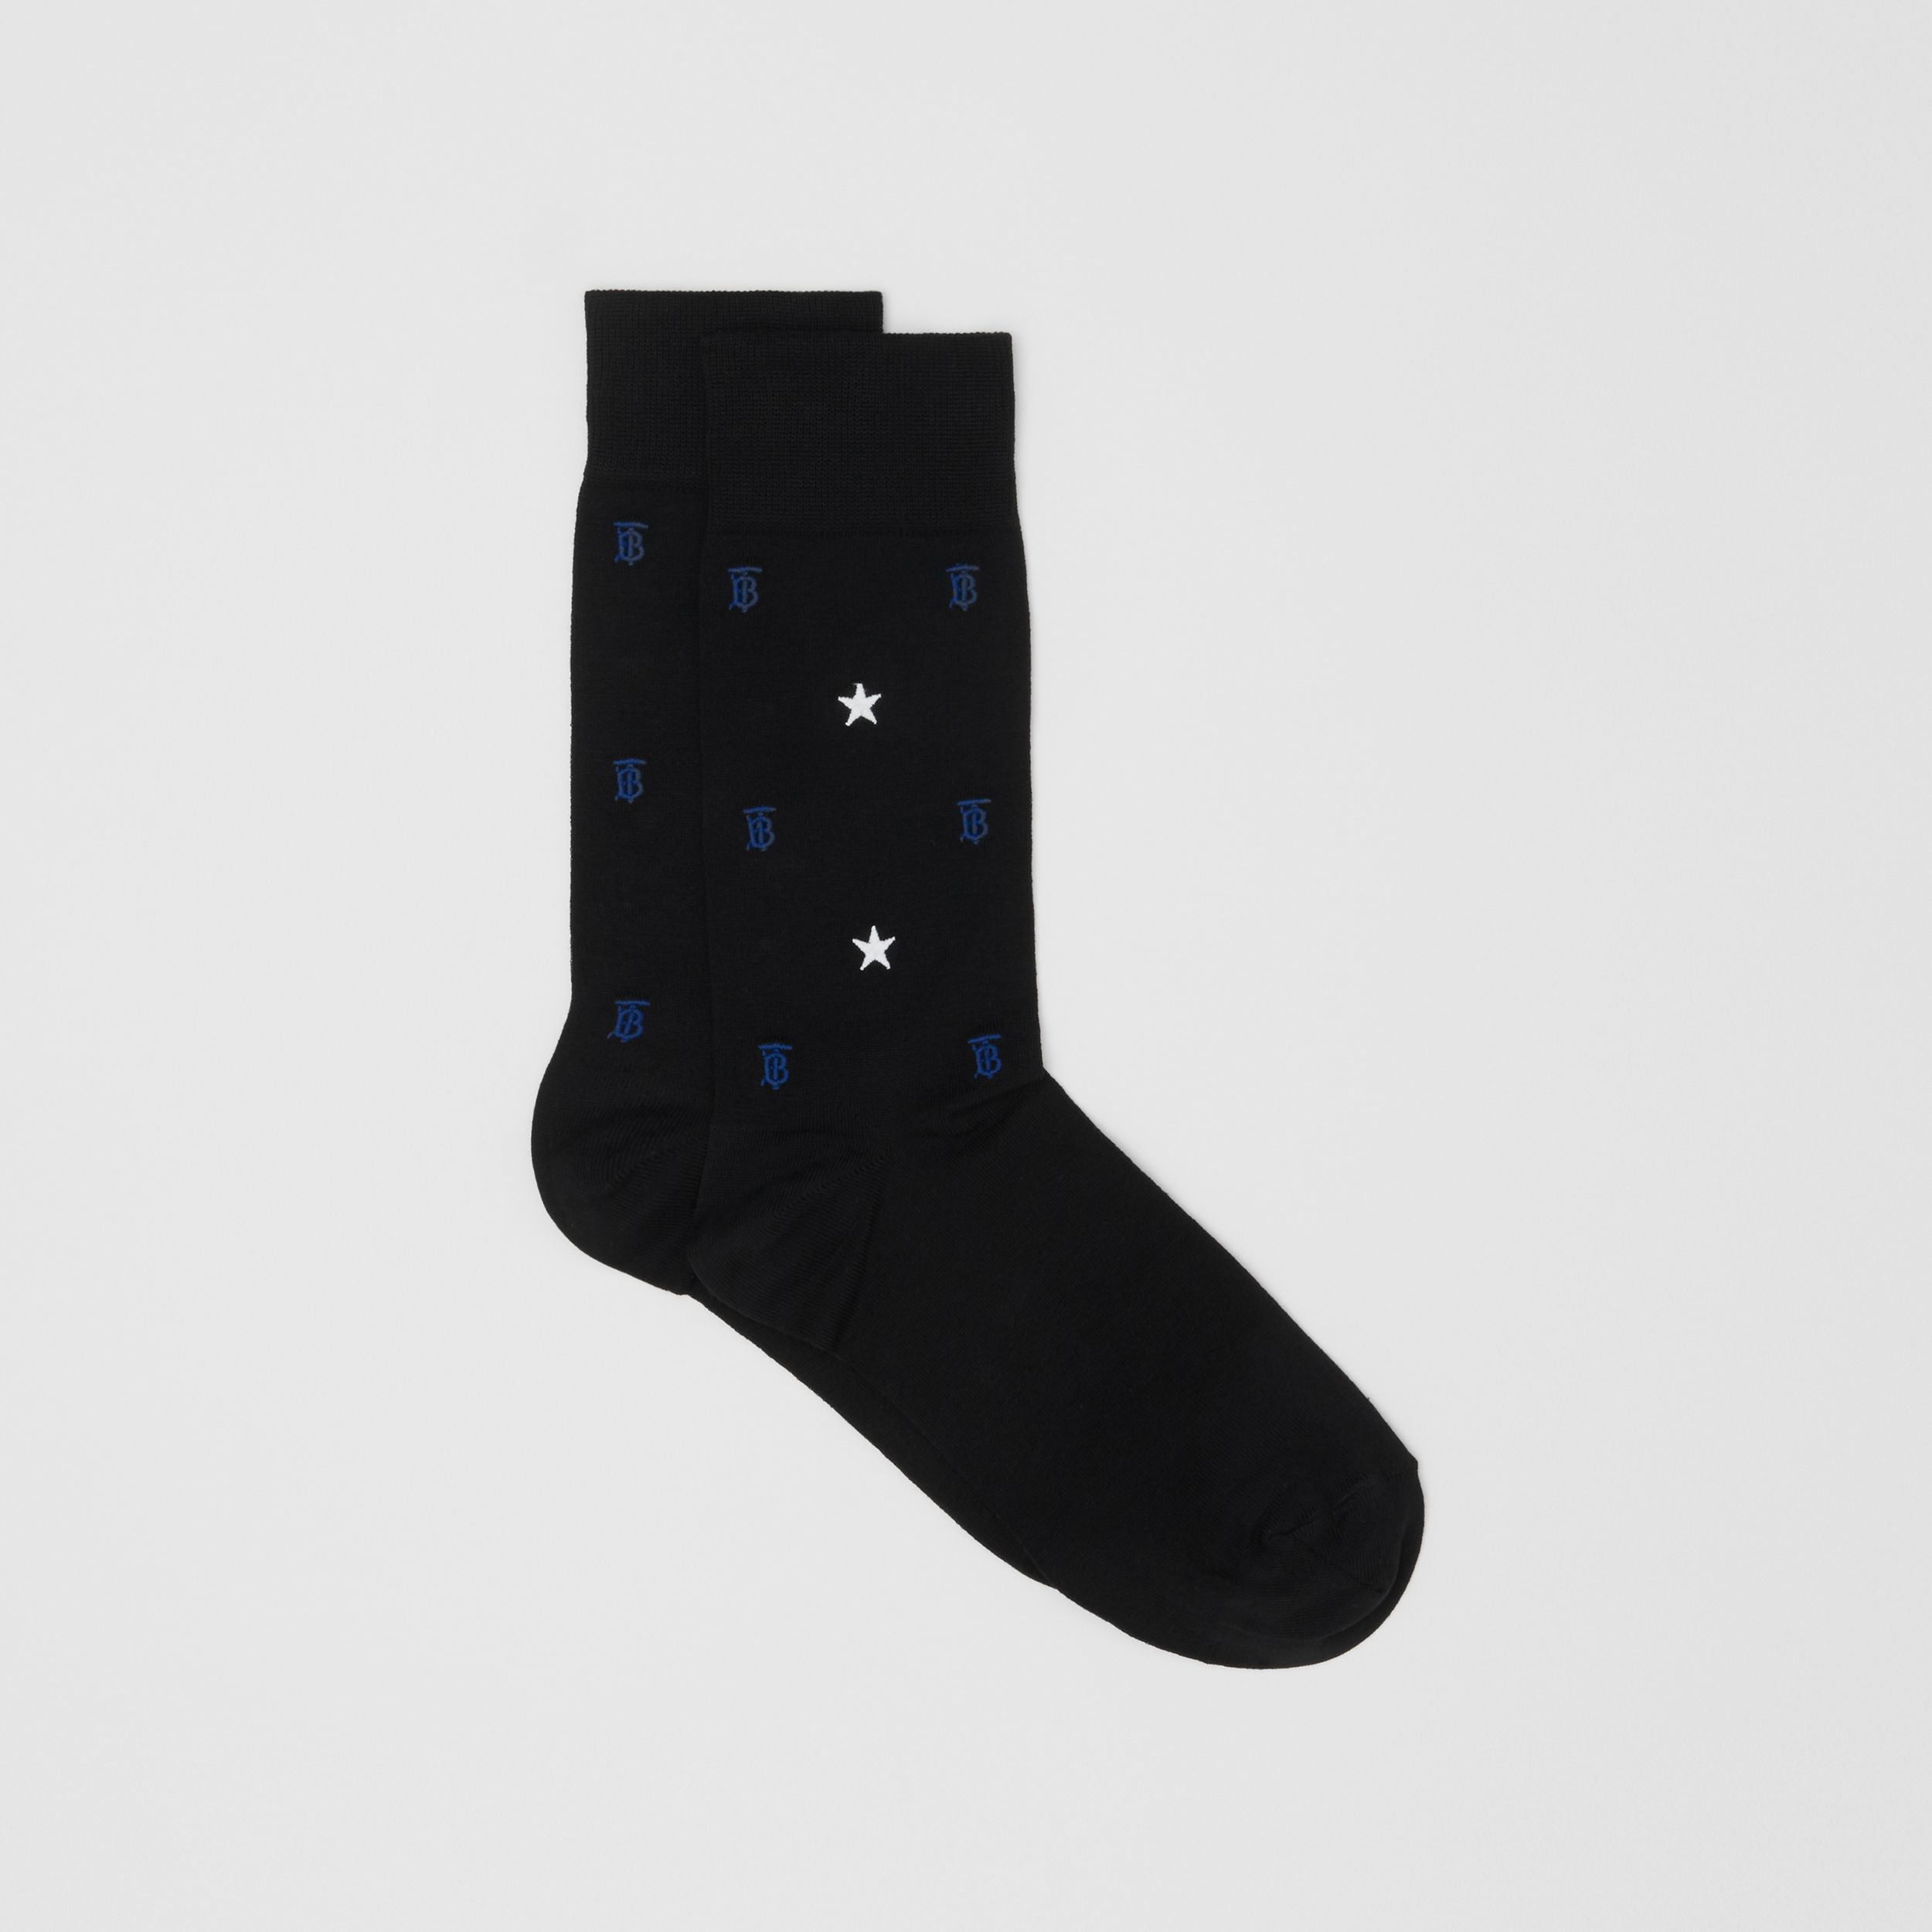 Star and Monogram Motif Cotton Blend Socks in Black | Burberry - 3